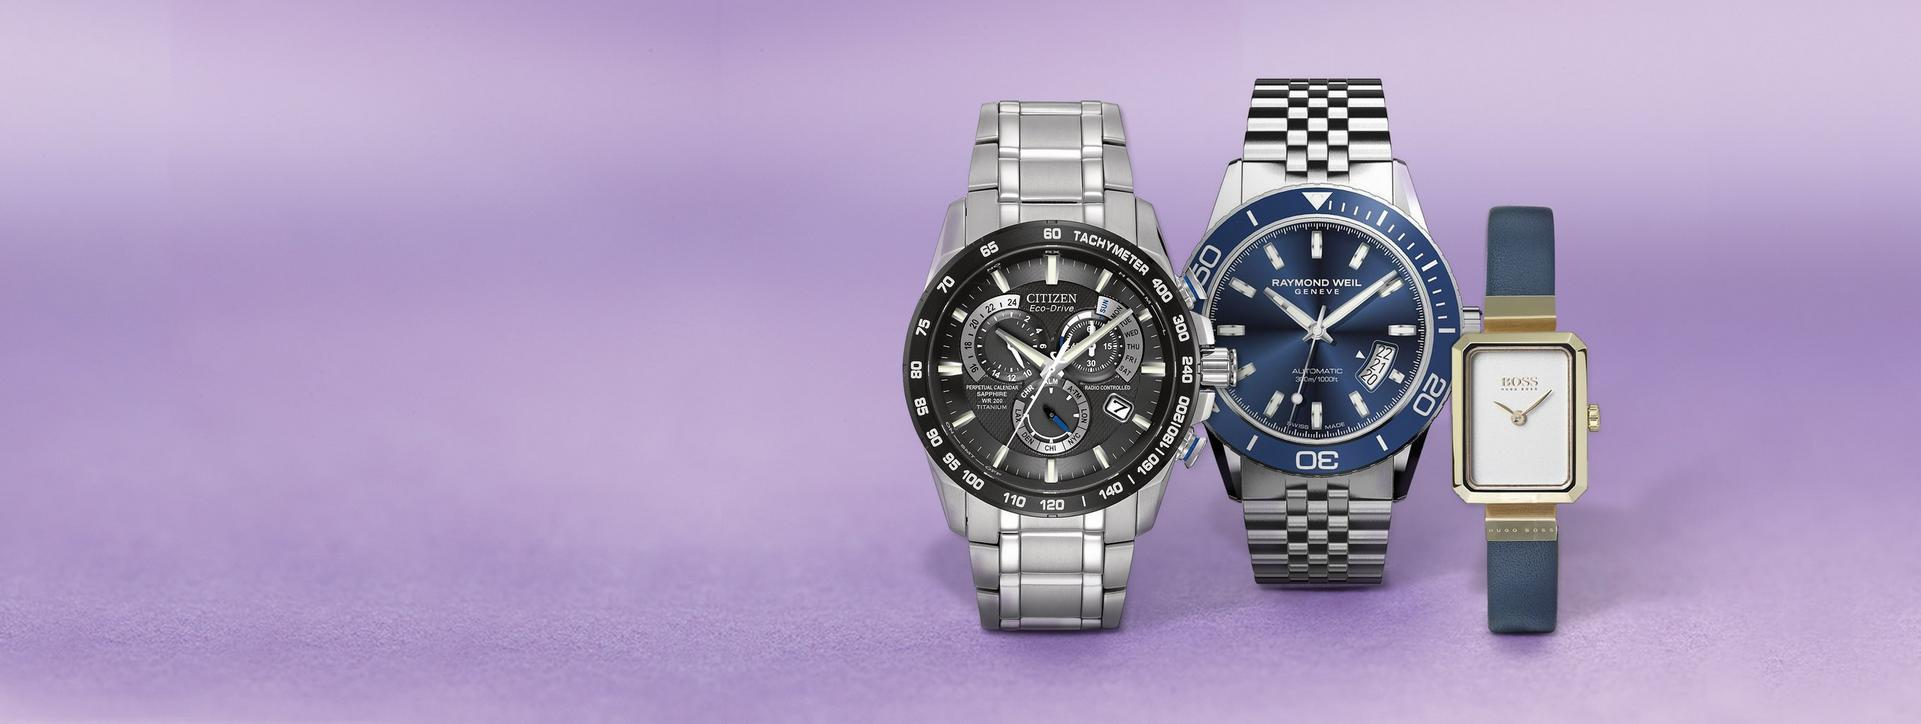 Find your favourite exclusive watch at Ernest Jones this Christmas from top brands such as TAG Heuer, Raymond Weil, Citizen, Hugo Boss and many more